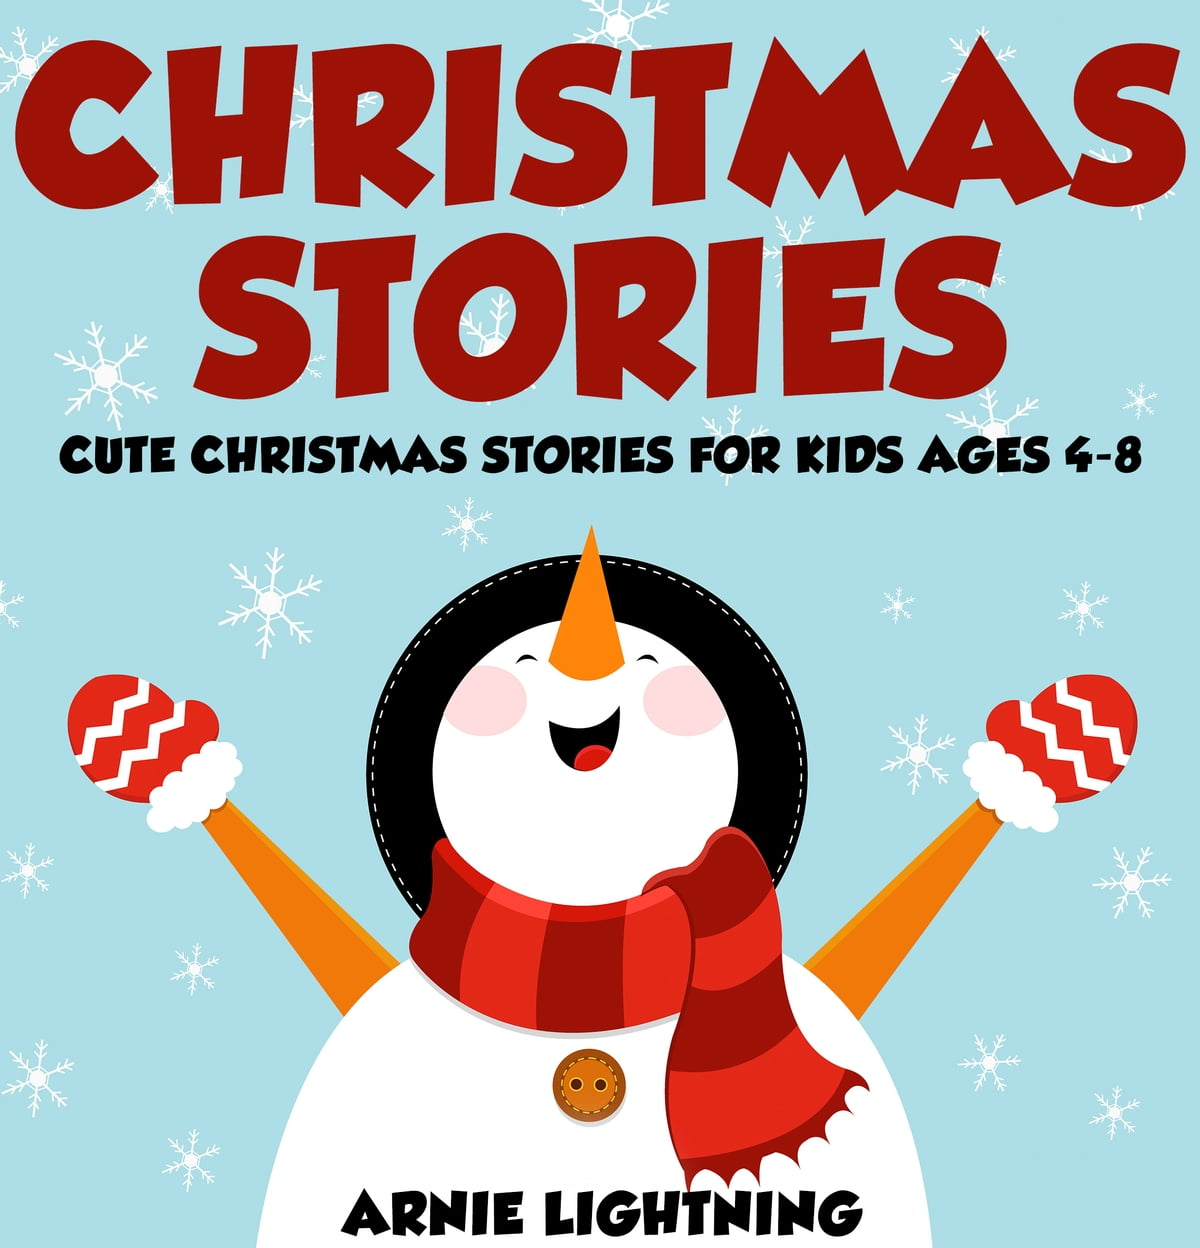 Christmas Stories For Kids.Christmas Stories Cute Christmas Stories For Kids Ages 4 8 Ebook By Arnie Lightning Rakuten Kobo